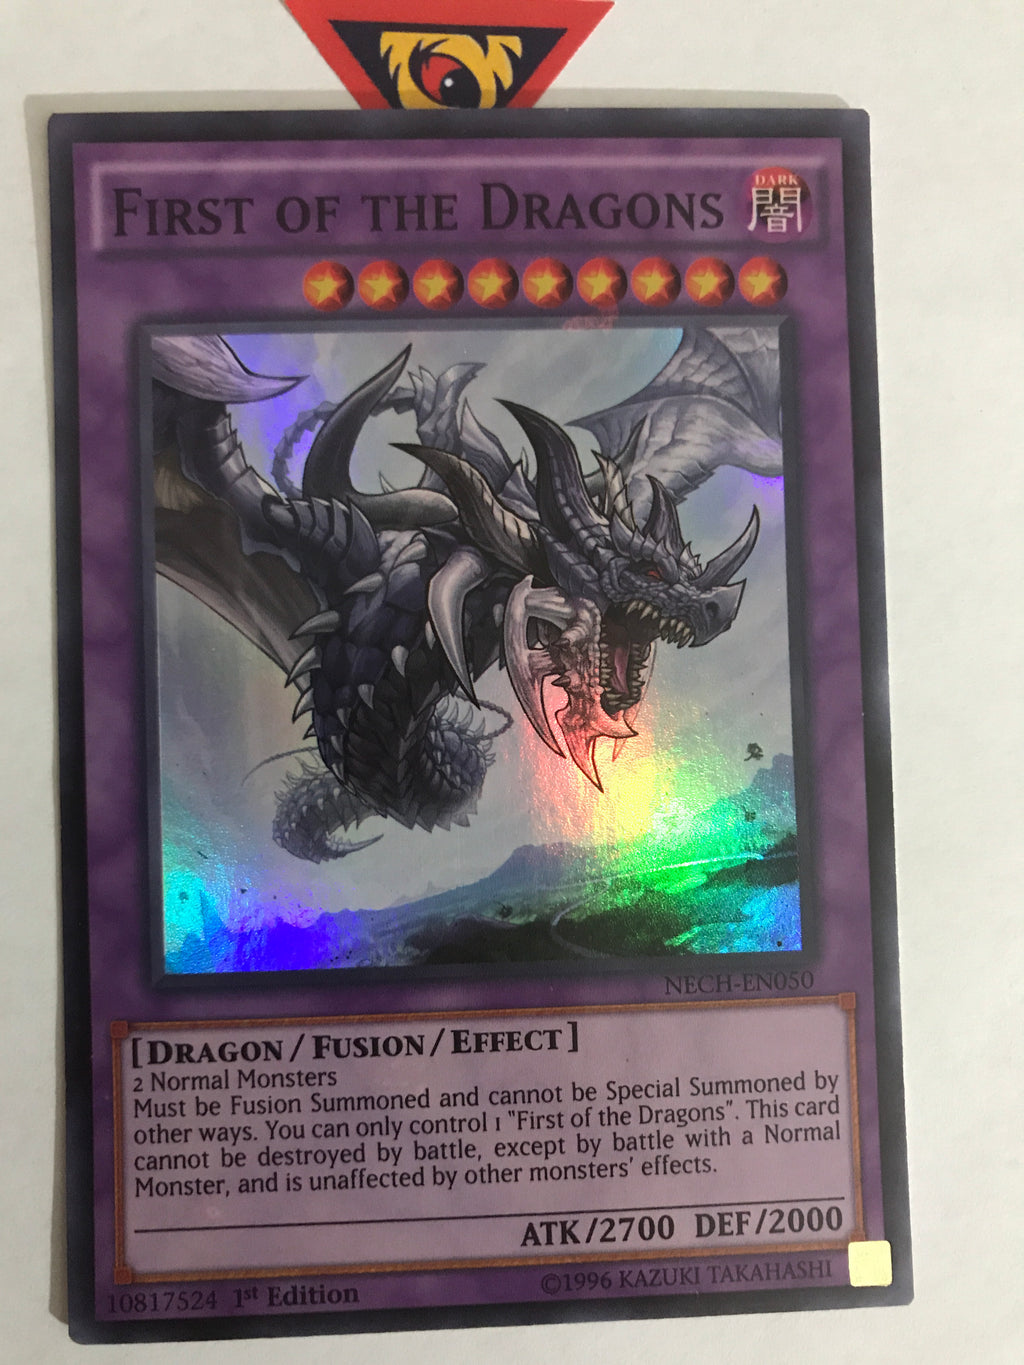 First of the Dragons / Super - NECH-EN050 - 1st